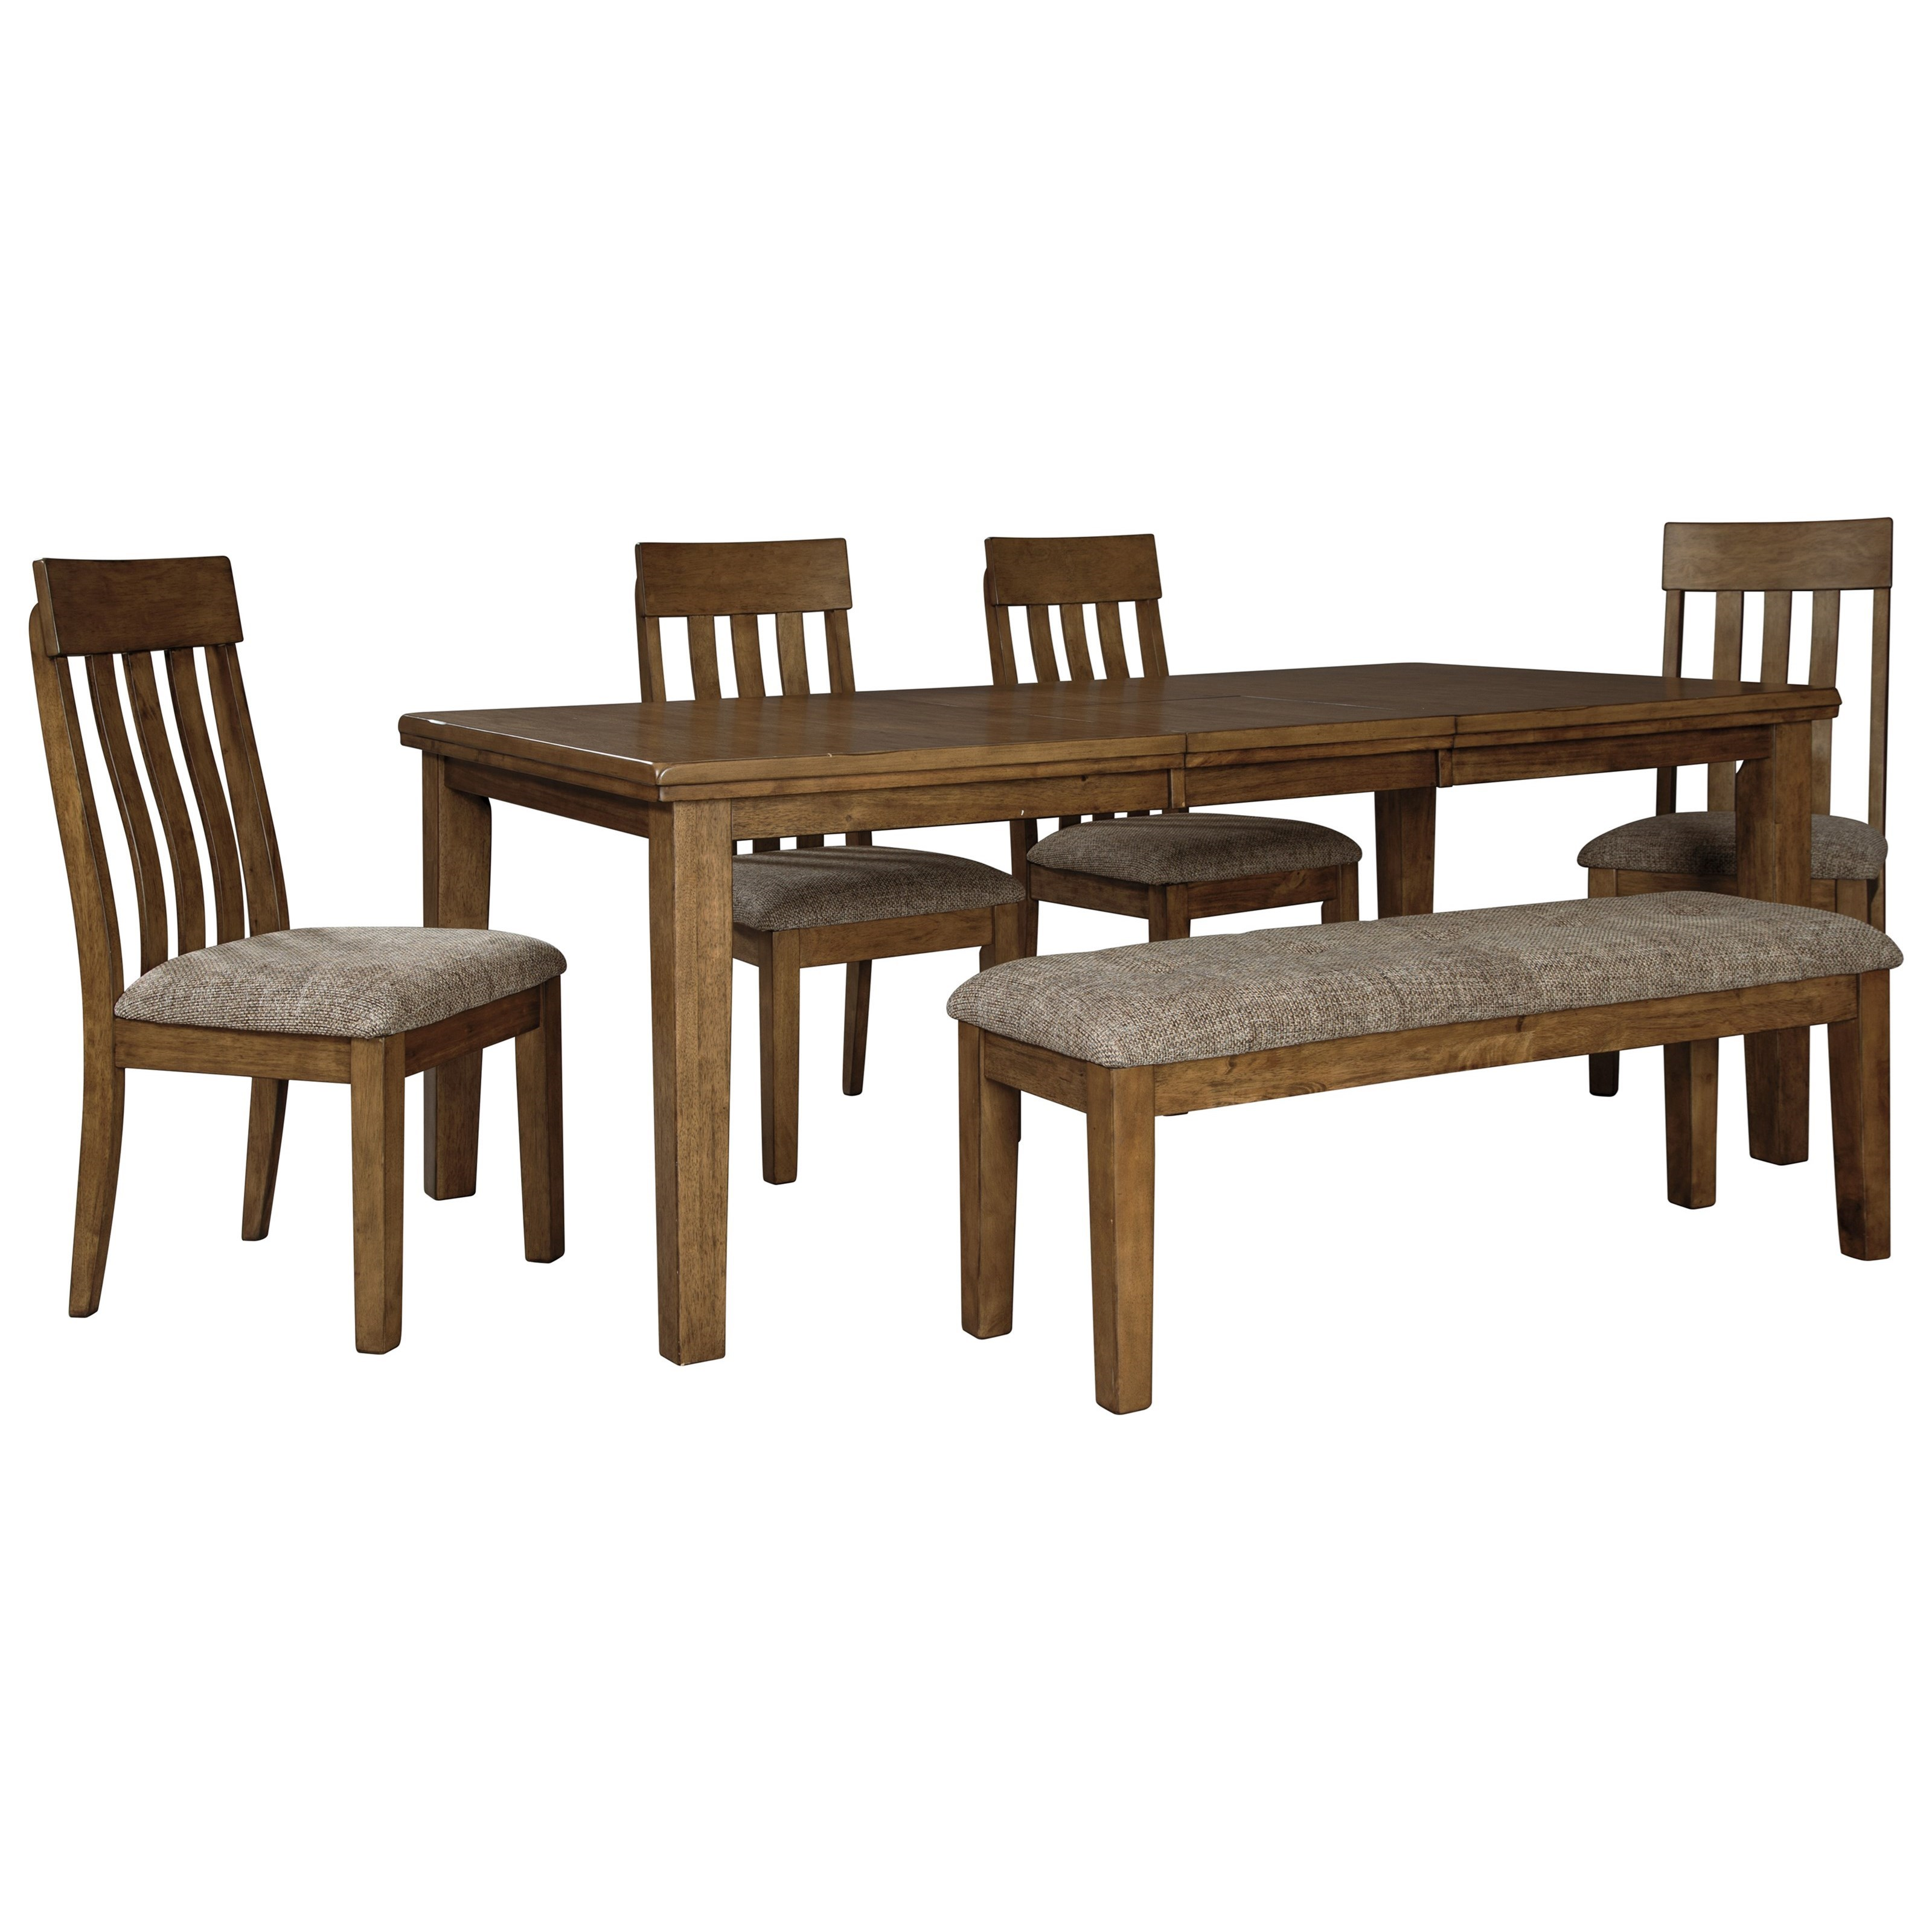 Benchcraft By Ashley Flaybern 6 Piece Table And Chair Set With Bench Royal Furniture Table